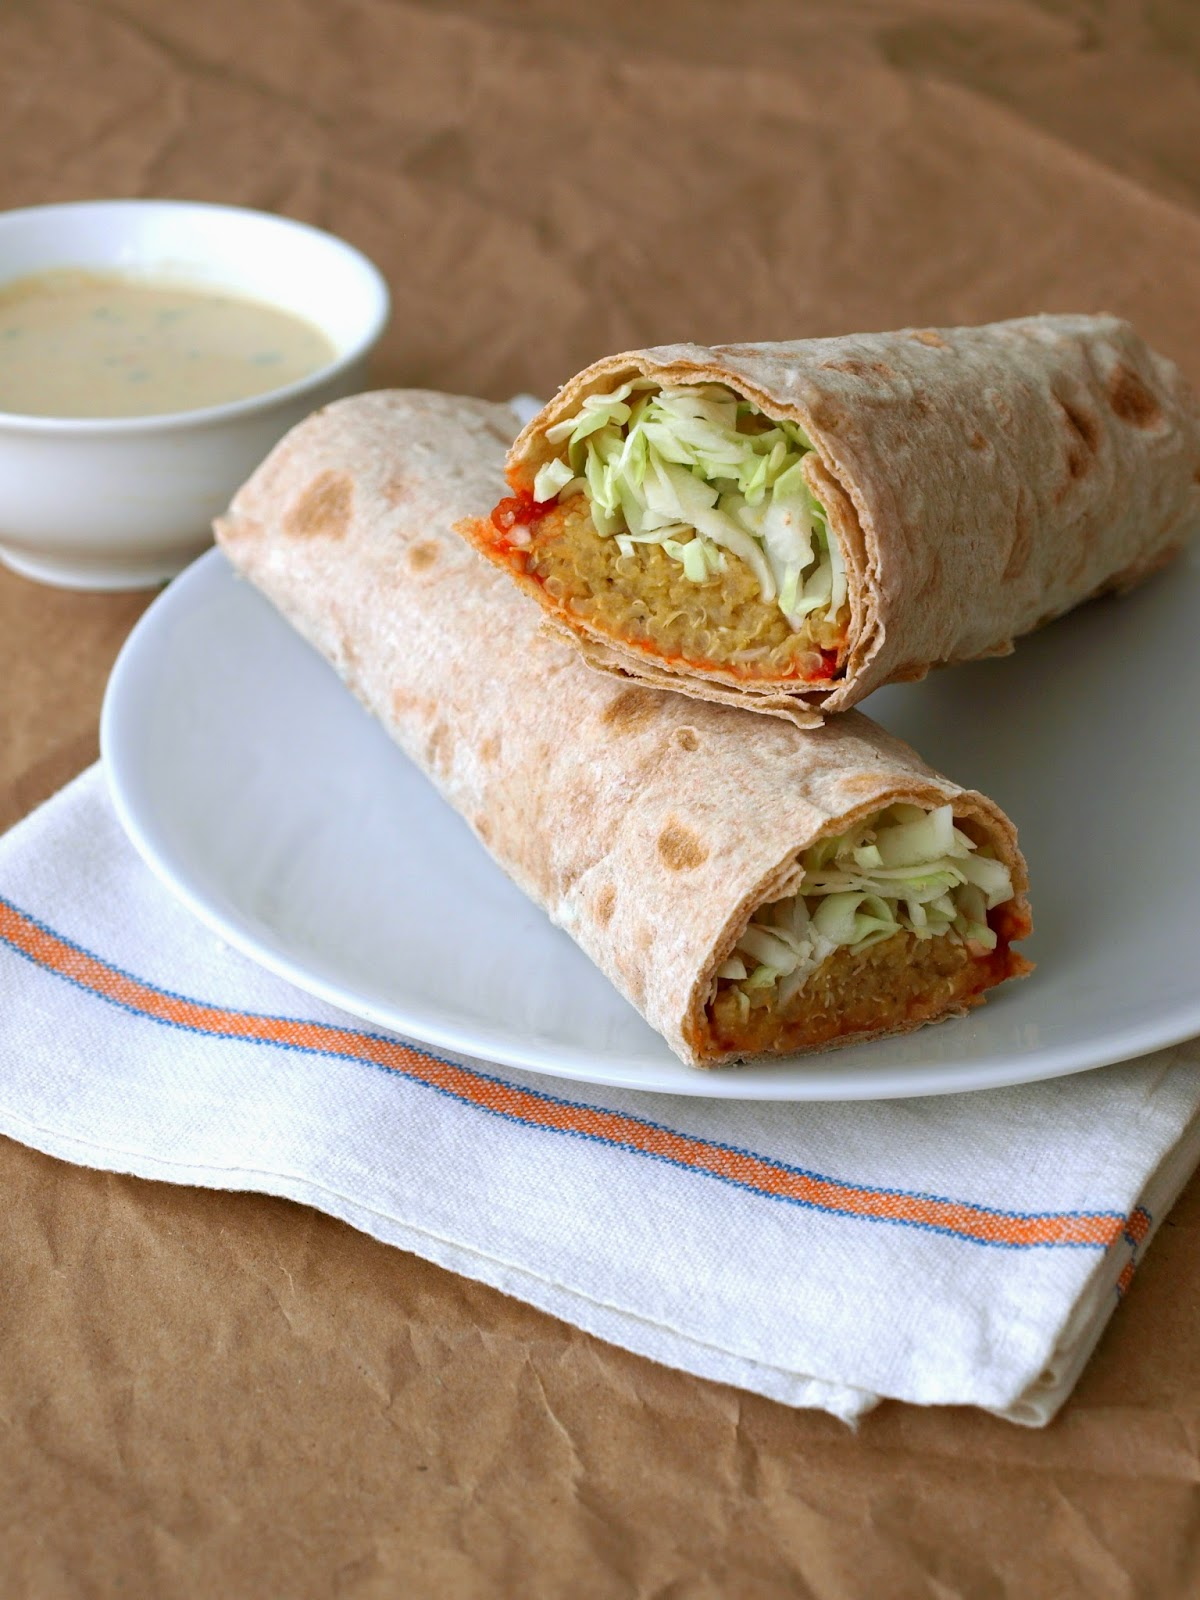 Spicy+Lentil+&+Quinoa+Wraps+with+Tahini+Sauce+(4).JPG